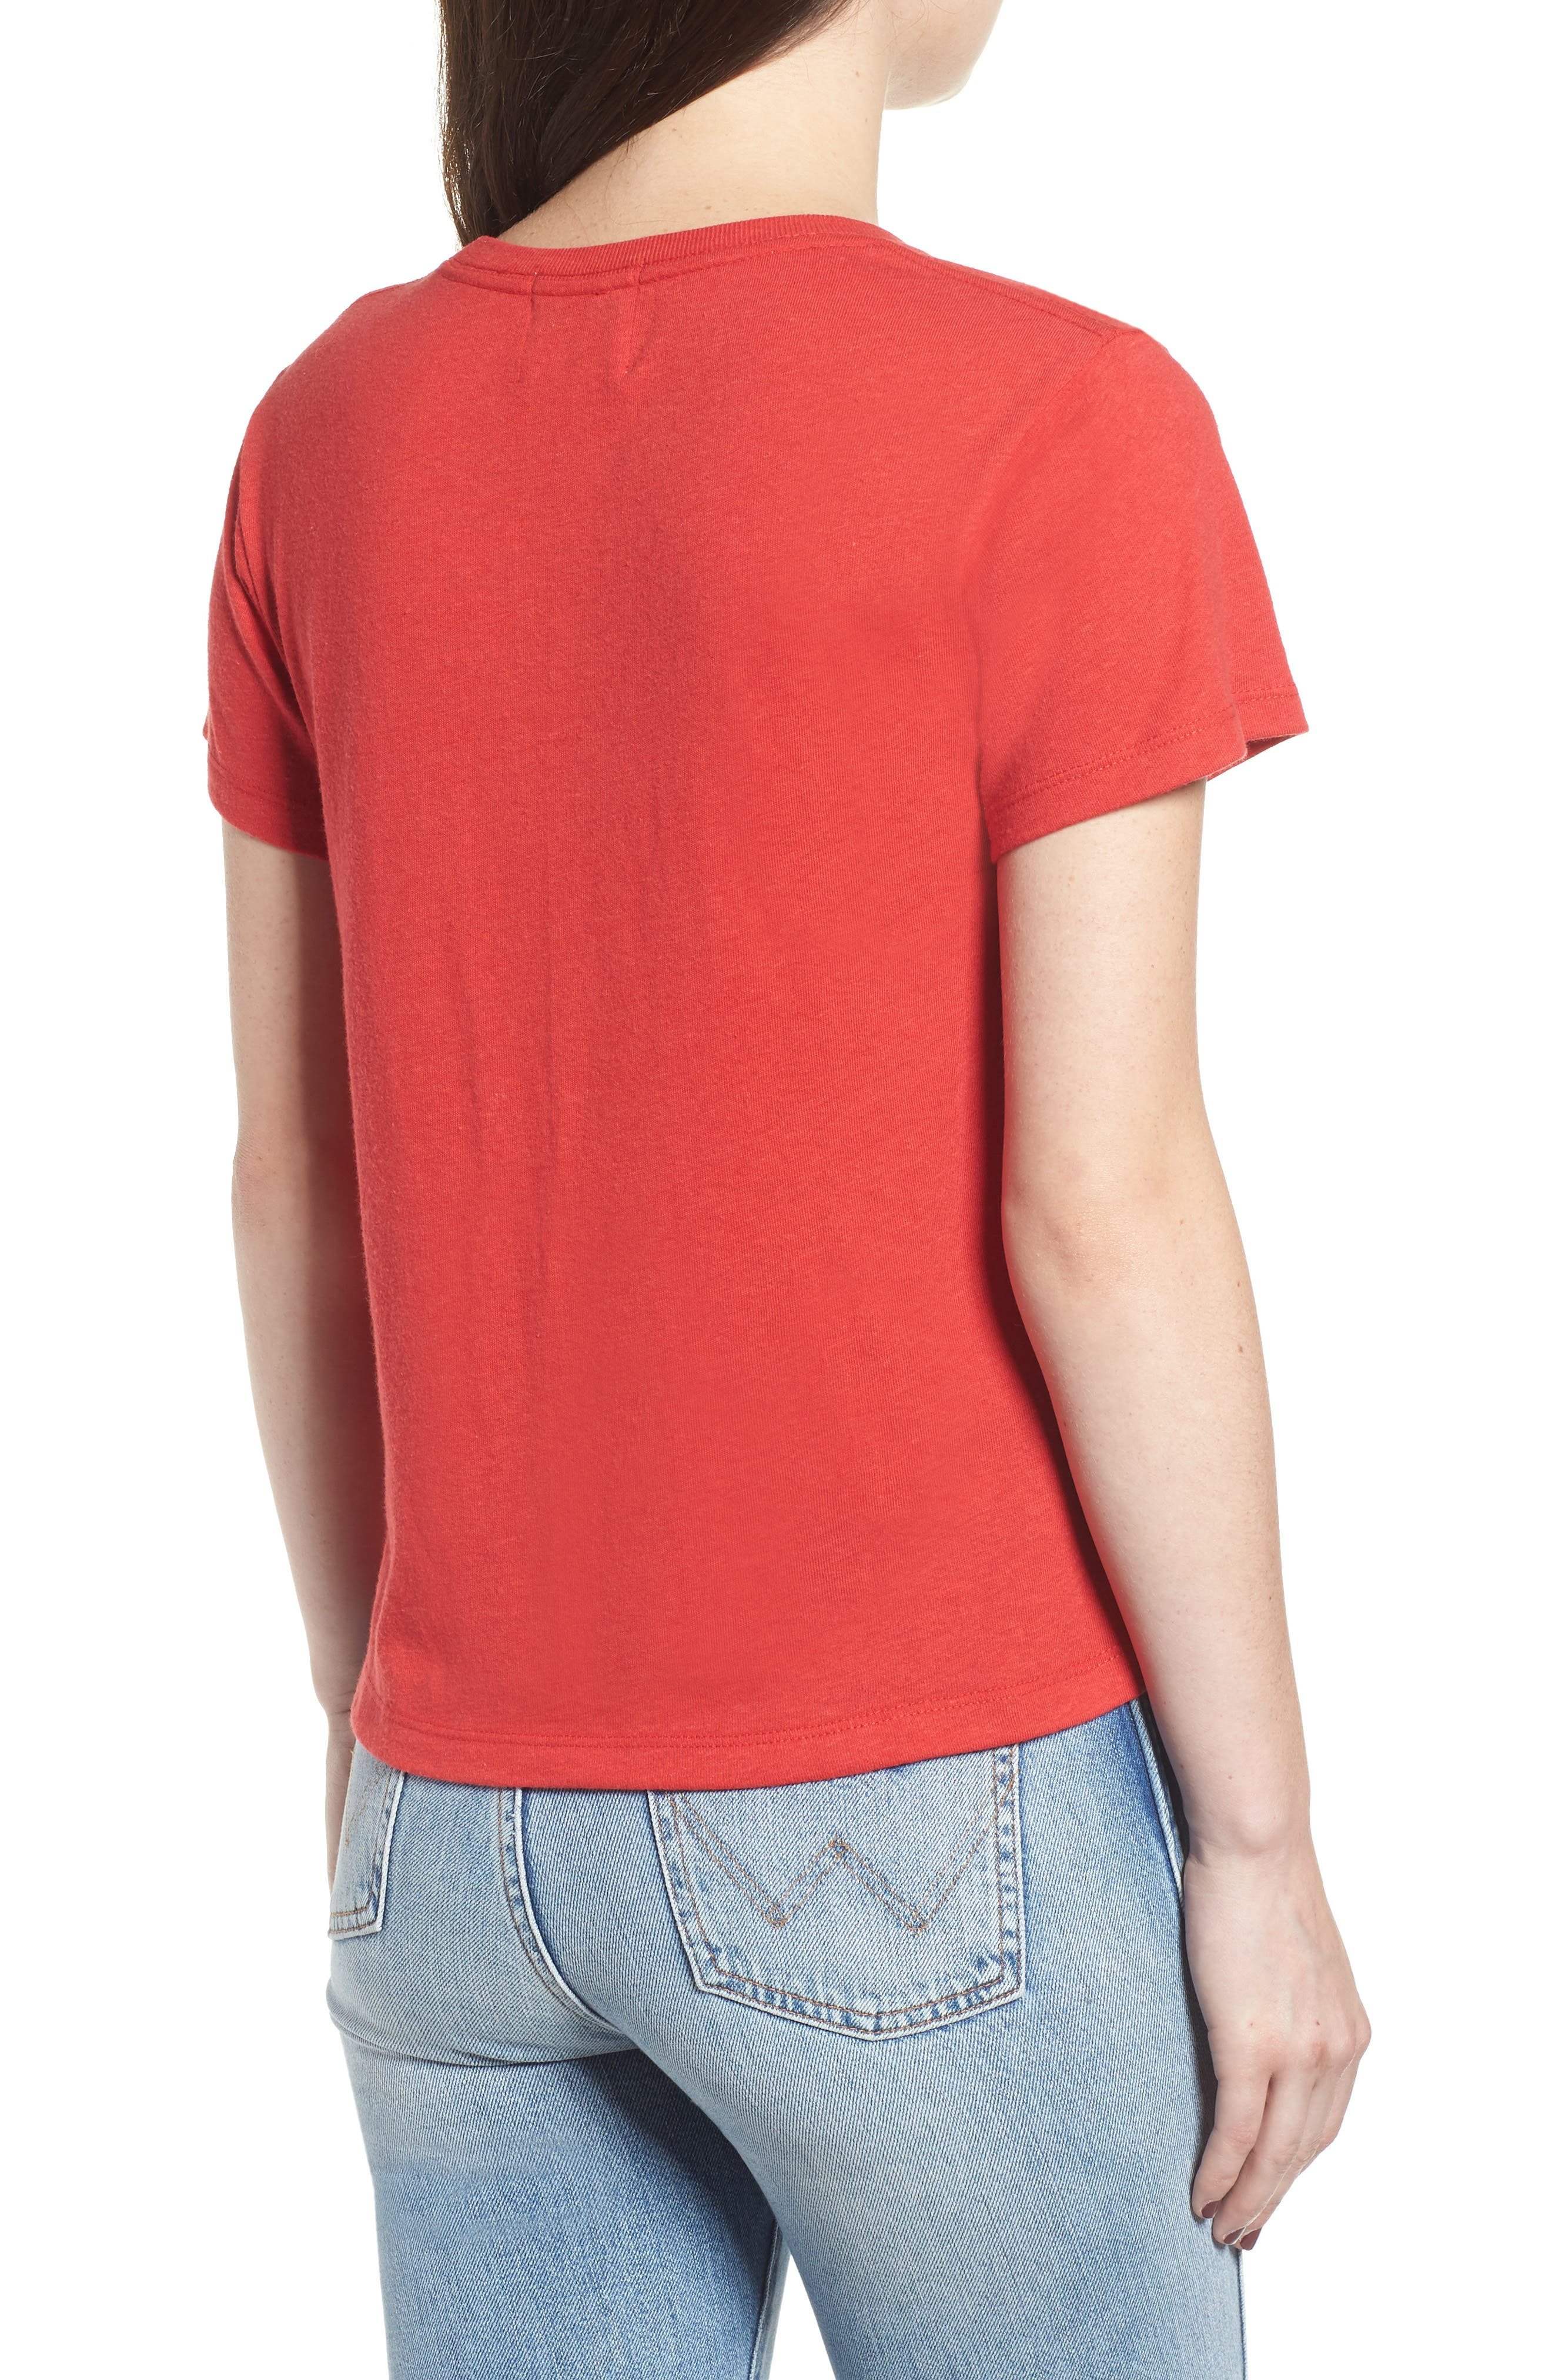 x Erin & Sara Depends Who's Asking Tee,                             Alternate thumbnail 2, color,                             RED